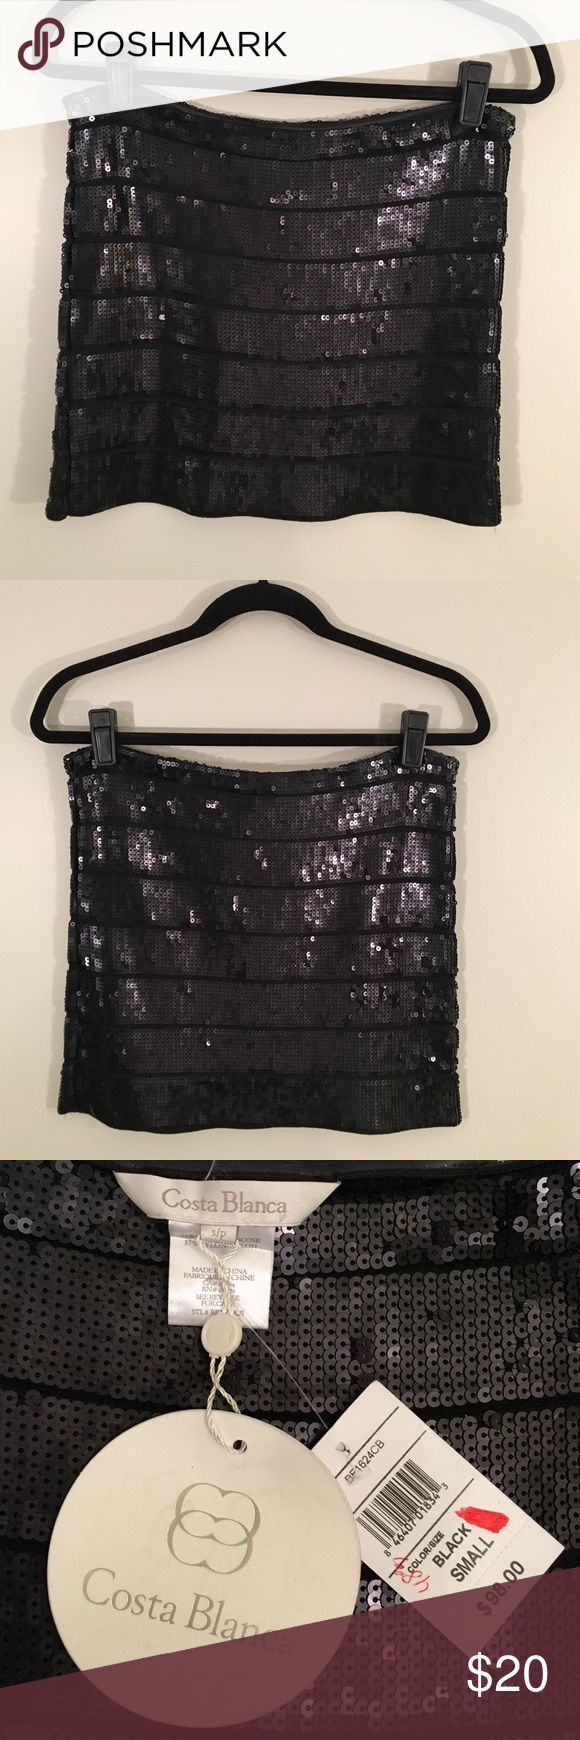 NWT black sequin body con skirt Brand New with Tags! Costa Blanca size small black sequin striped body con skirt. Side zip. Great for NYE or Cocktail party with a nice blouse! Costa Blanca Skirts Mini